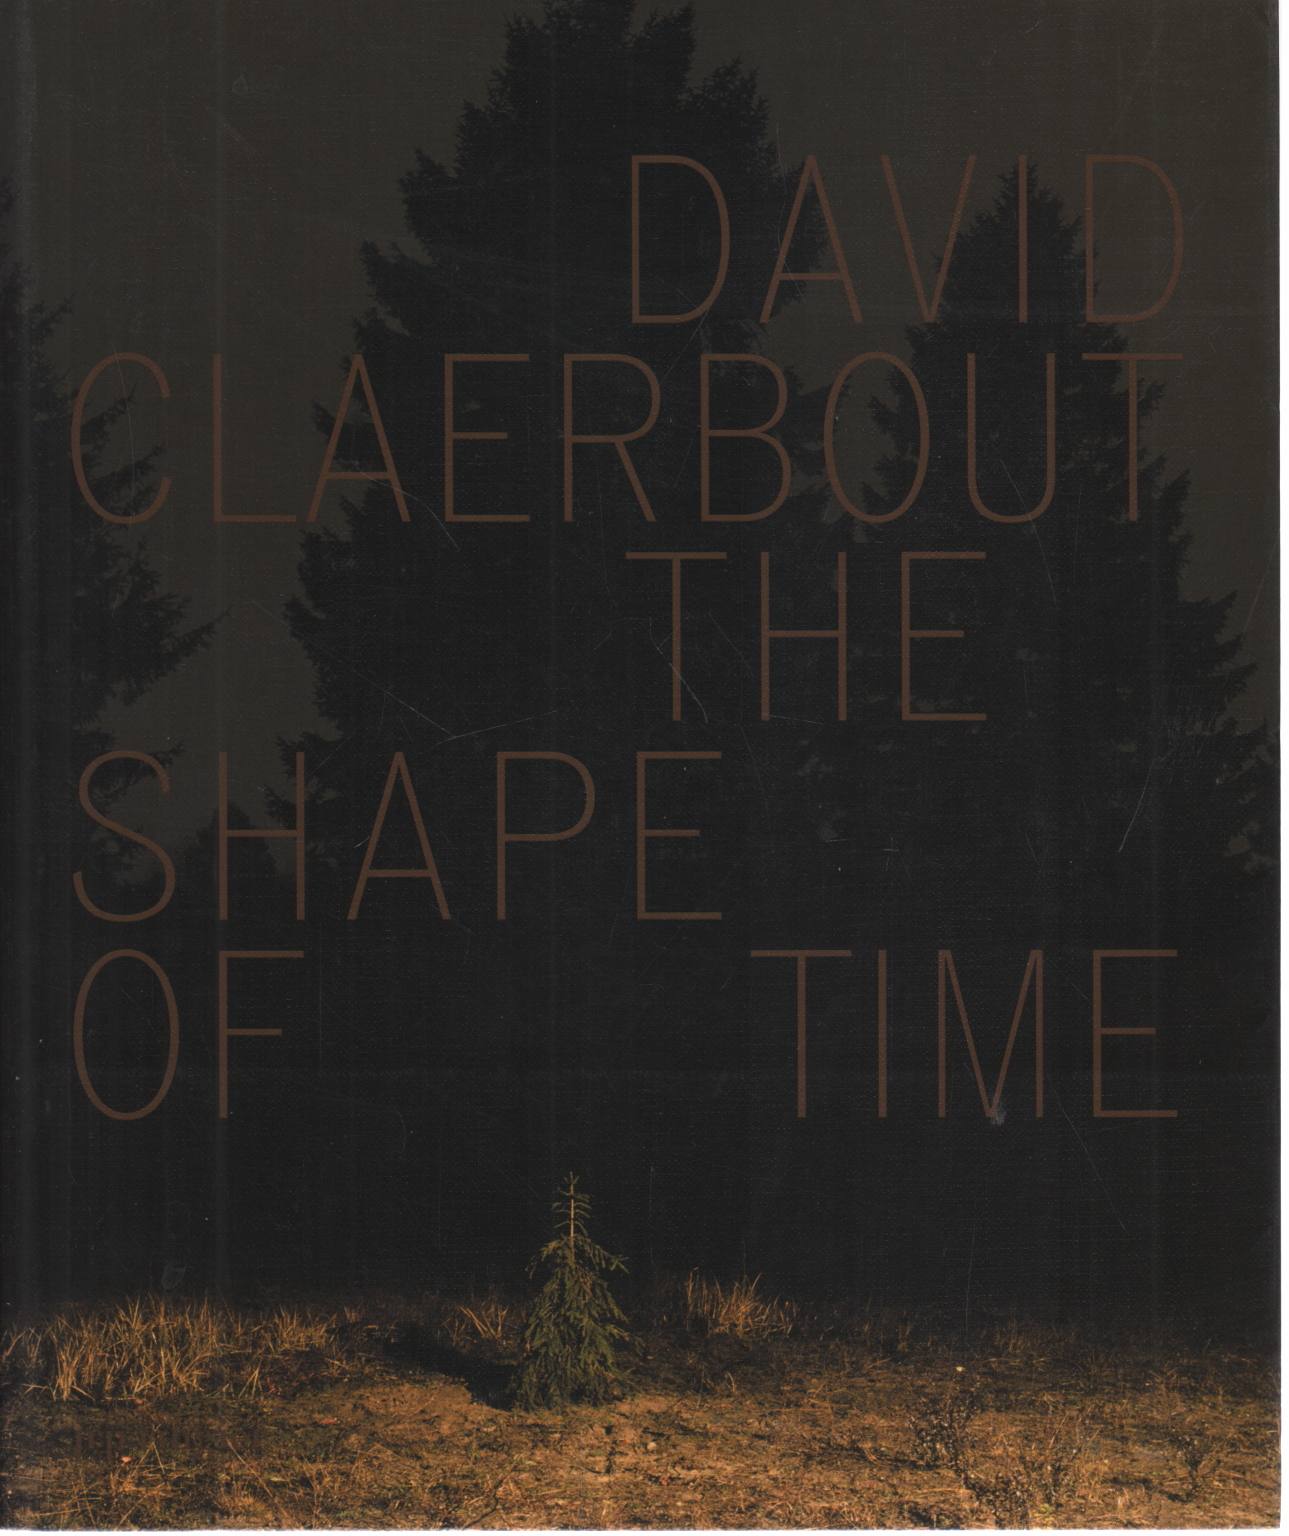 David Claerbout: The Shape of Time, AA.VV.